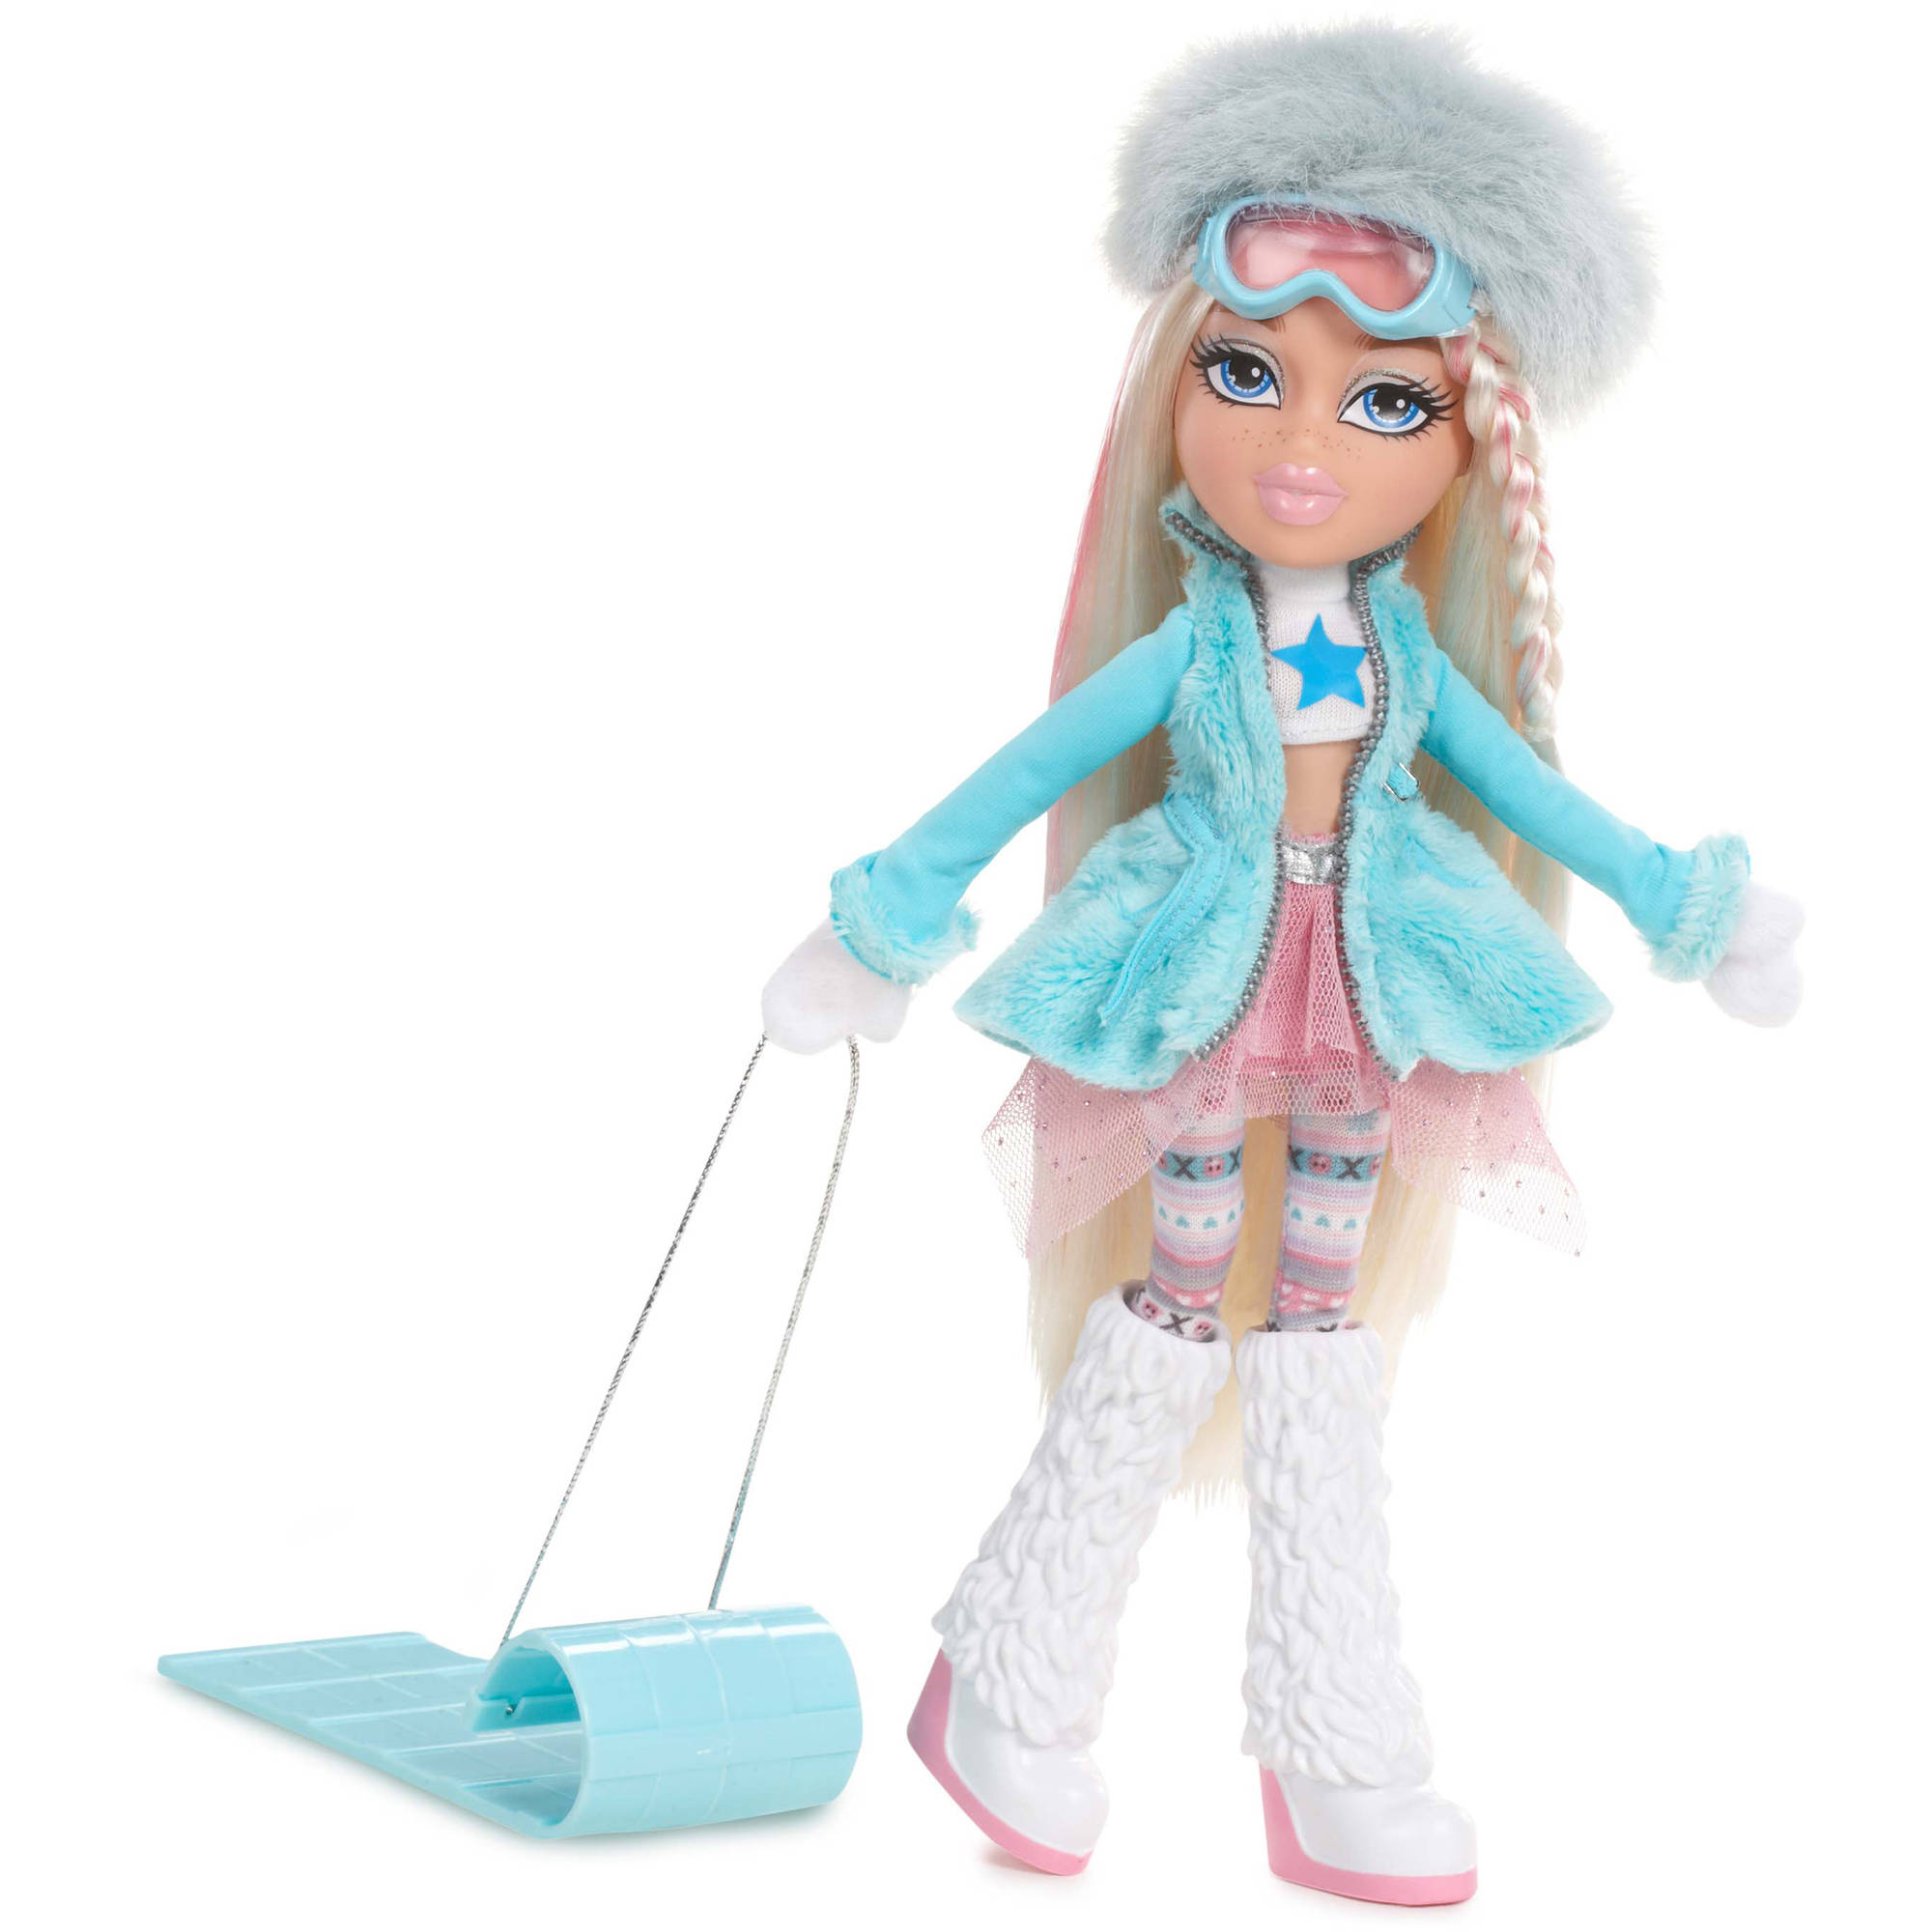 Bratz SnowKissed Doll, Cloe